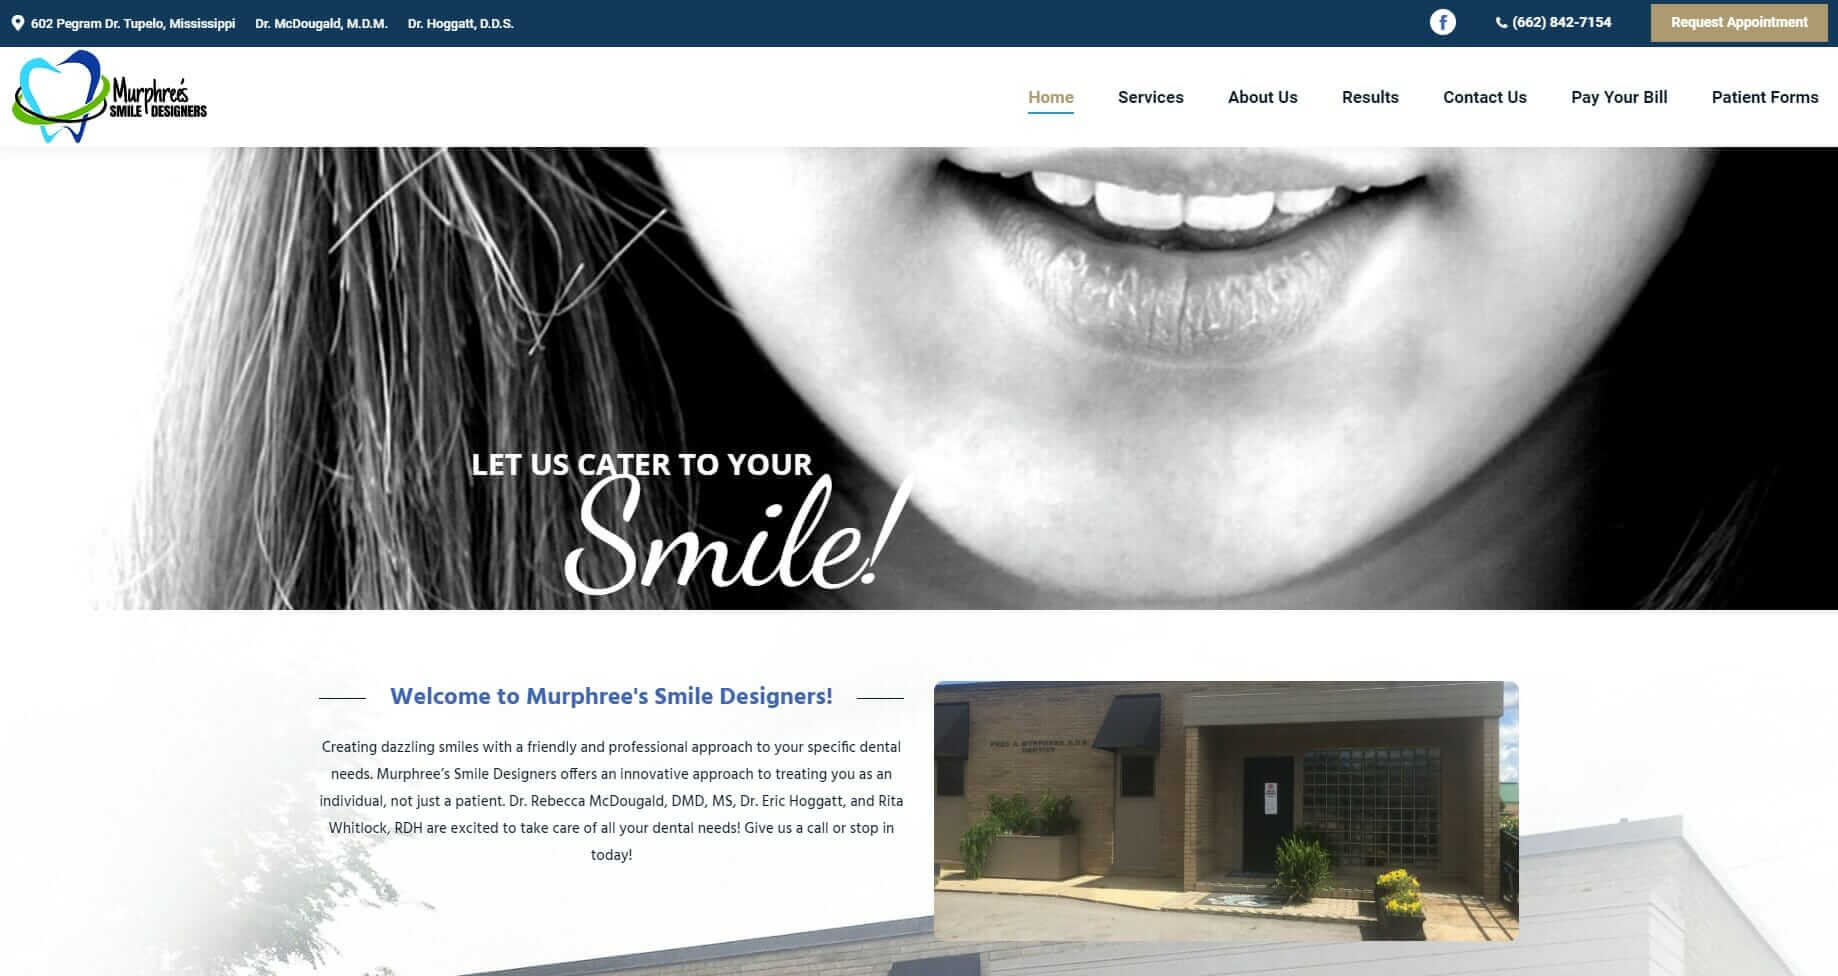 Website and Marketing for Dentists - Murphree's Smile Designers